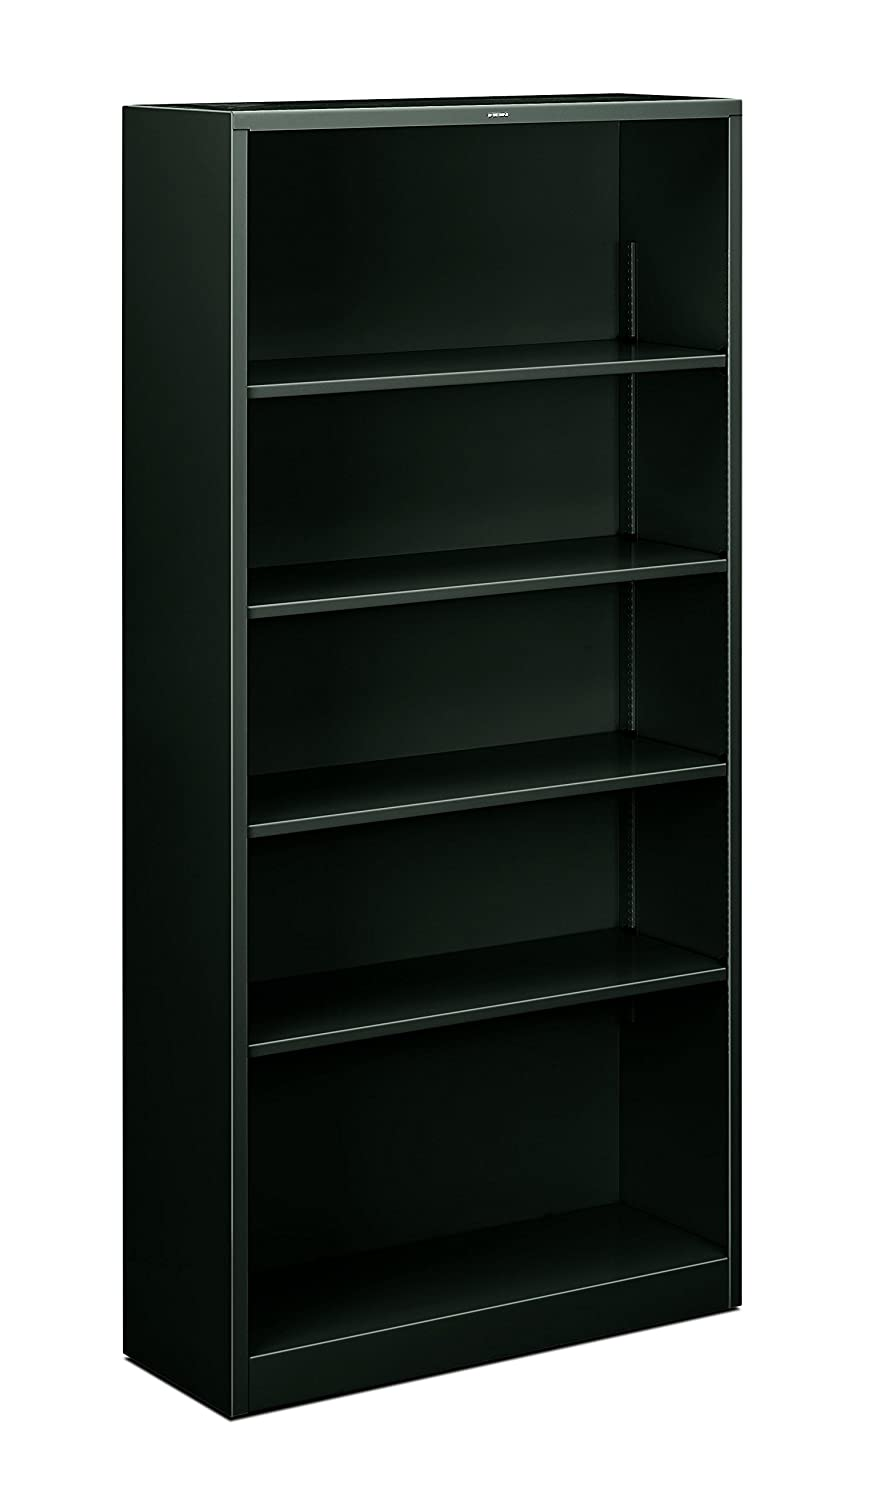 HONS60ABCP - HON Metal Bookcase